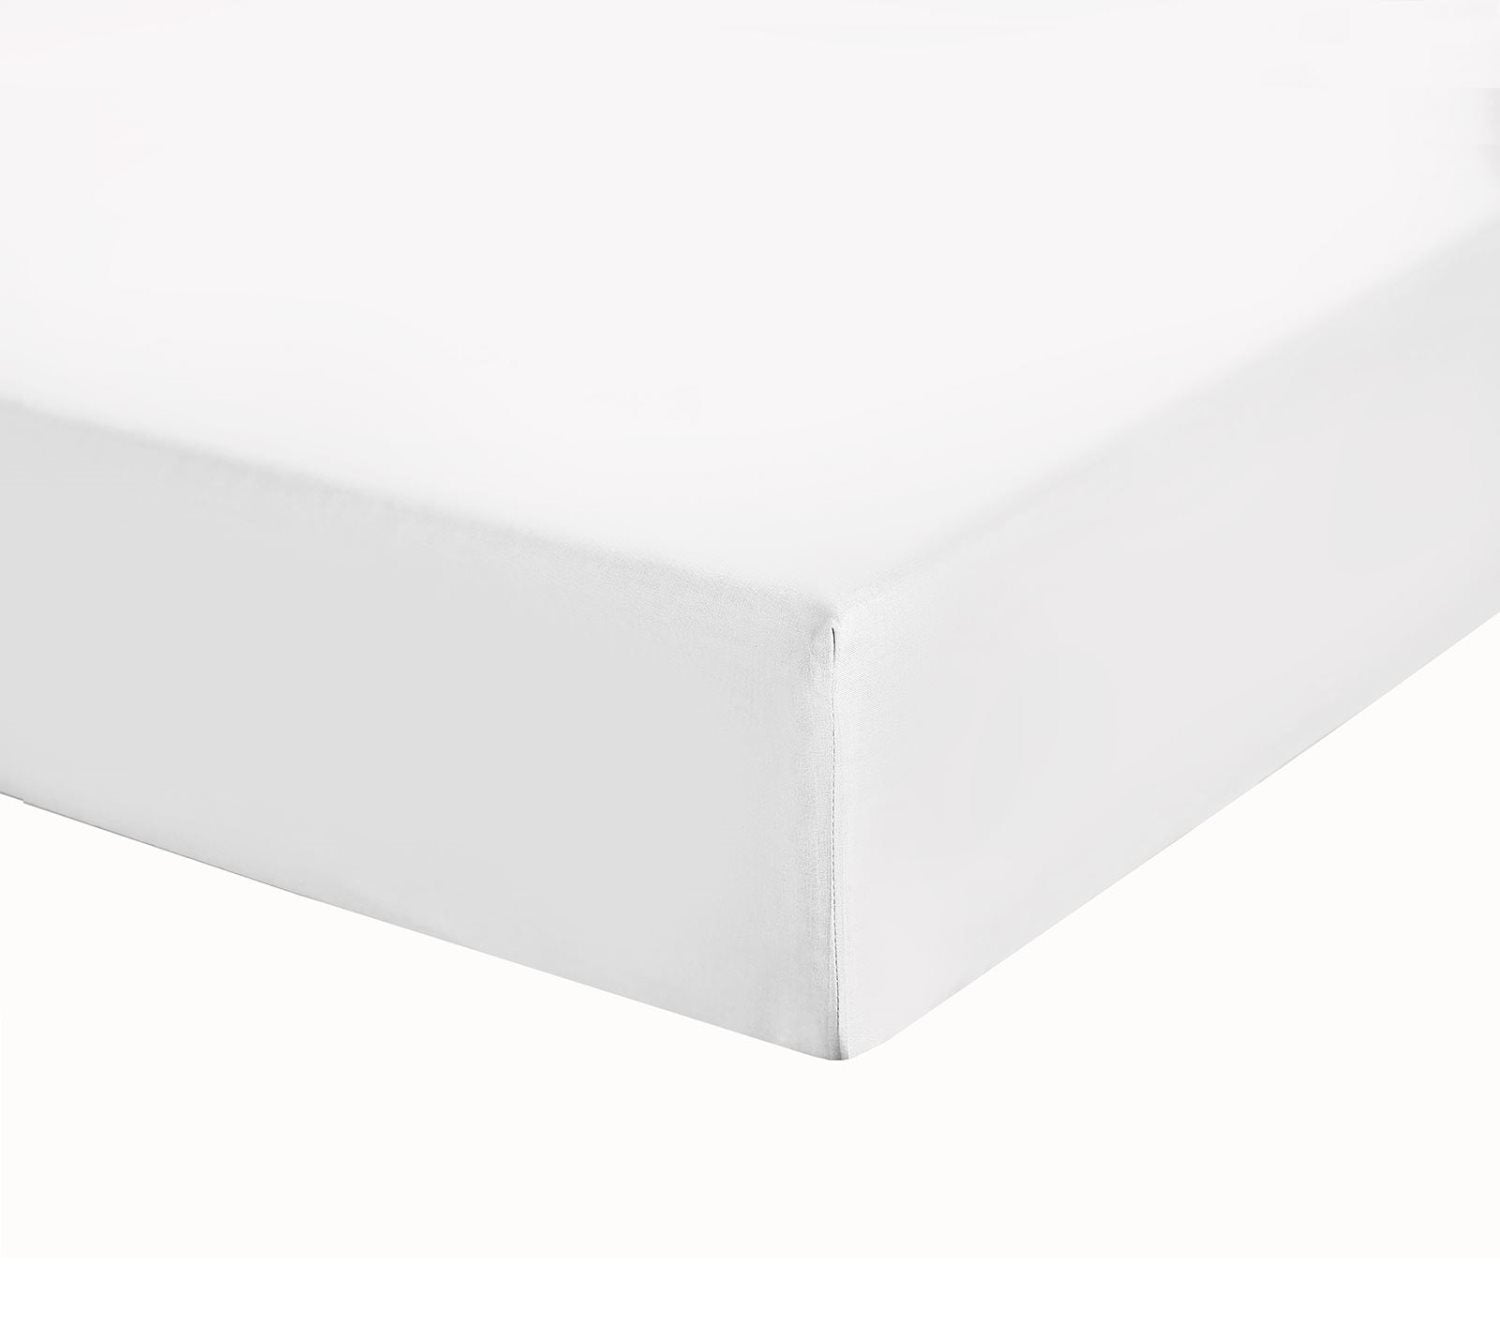 46cm king size fitted sheet white